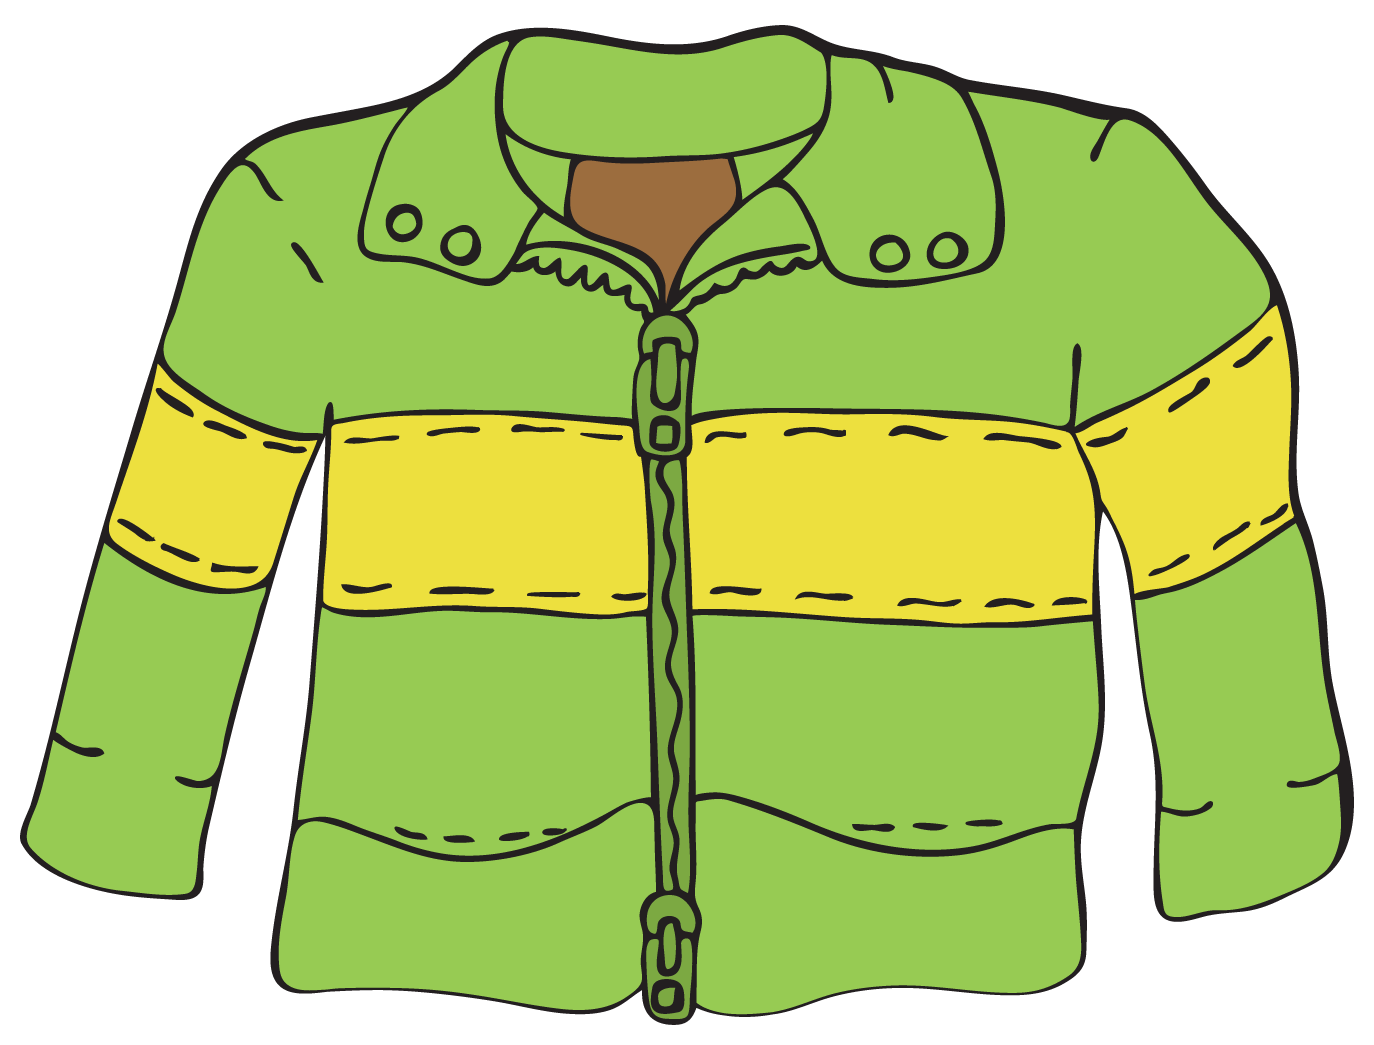 clipart of a jacket - photo #10